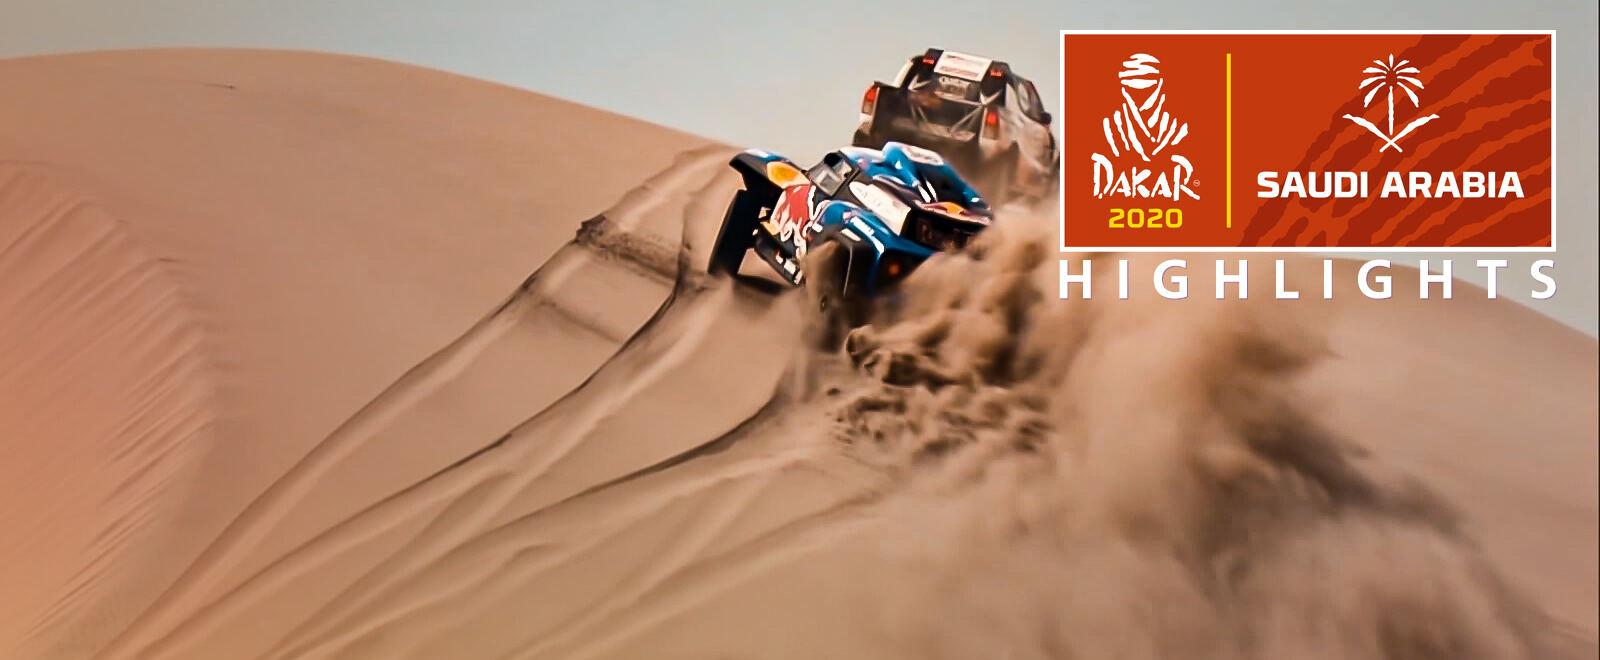 HIGHLIGHTS DAKAR 2020